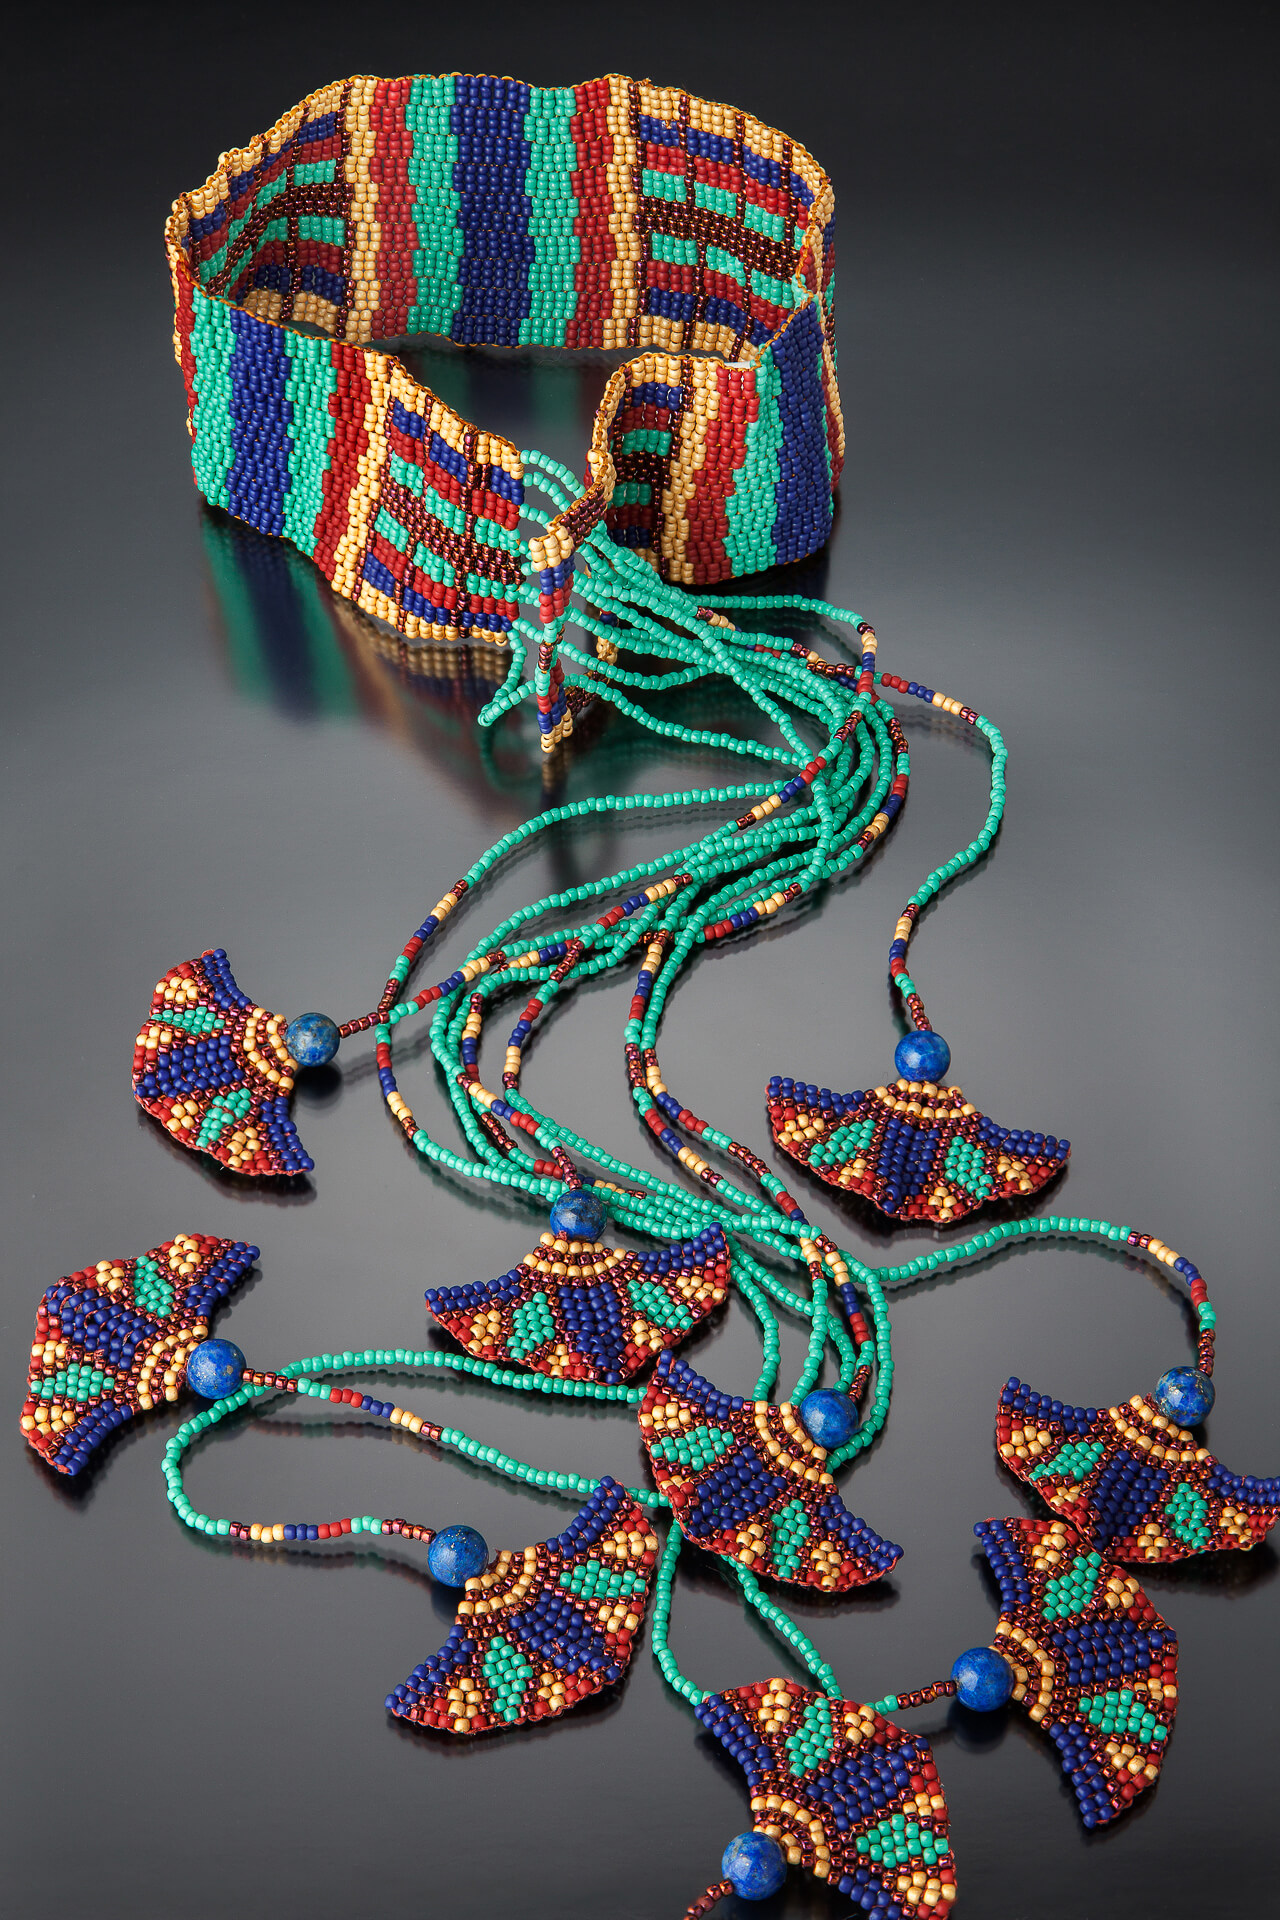 Karin Alisa Houben Jewelry: Lotus Scarf Necklace, beading, intricate beading, handcrafted jewelry, fish jewelry, Native American inspired